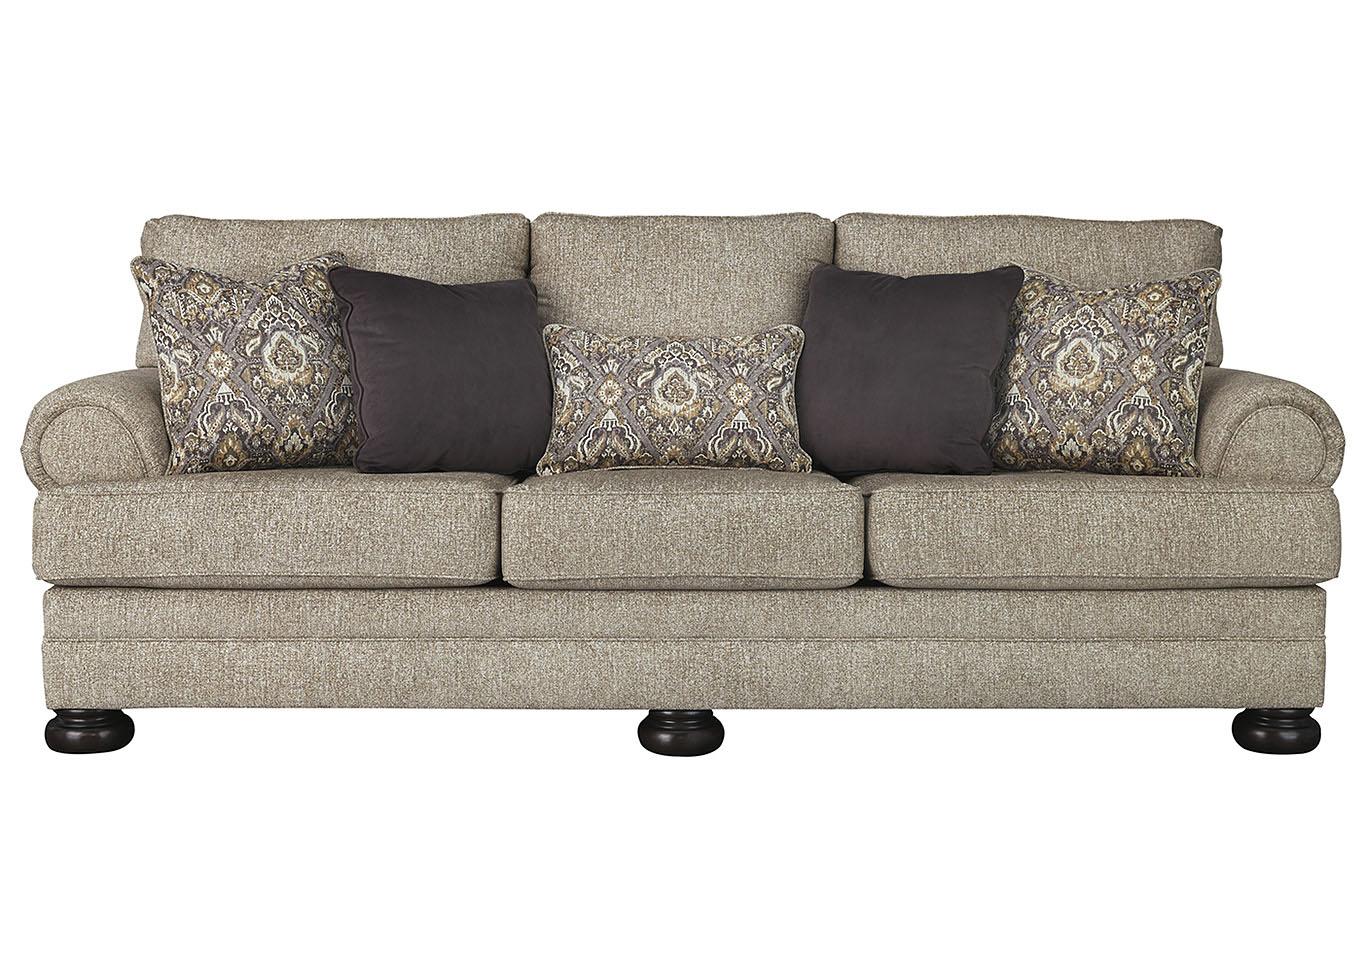 Kananwood Oatmeal Sofa,Signature Design By Ashley